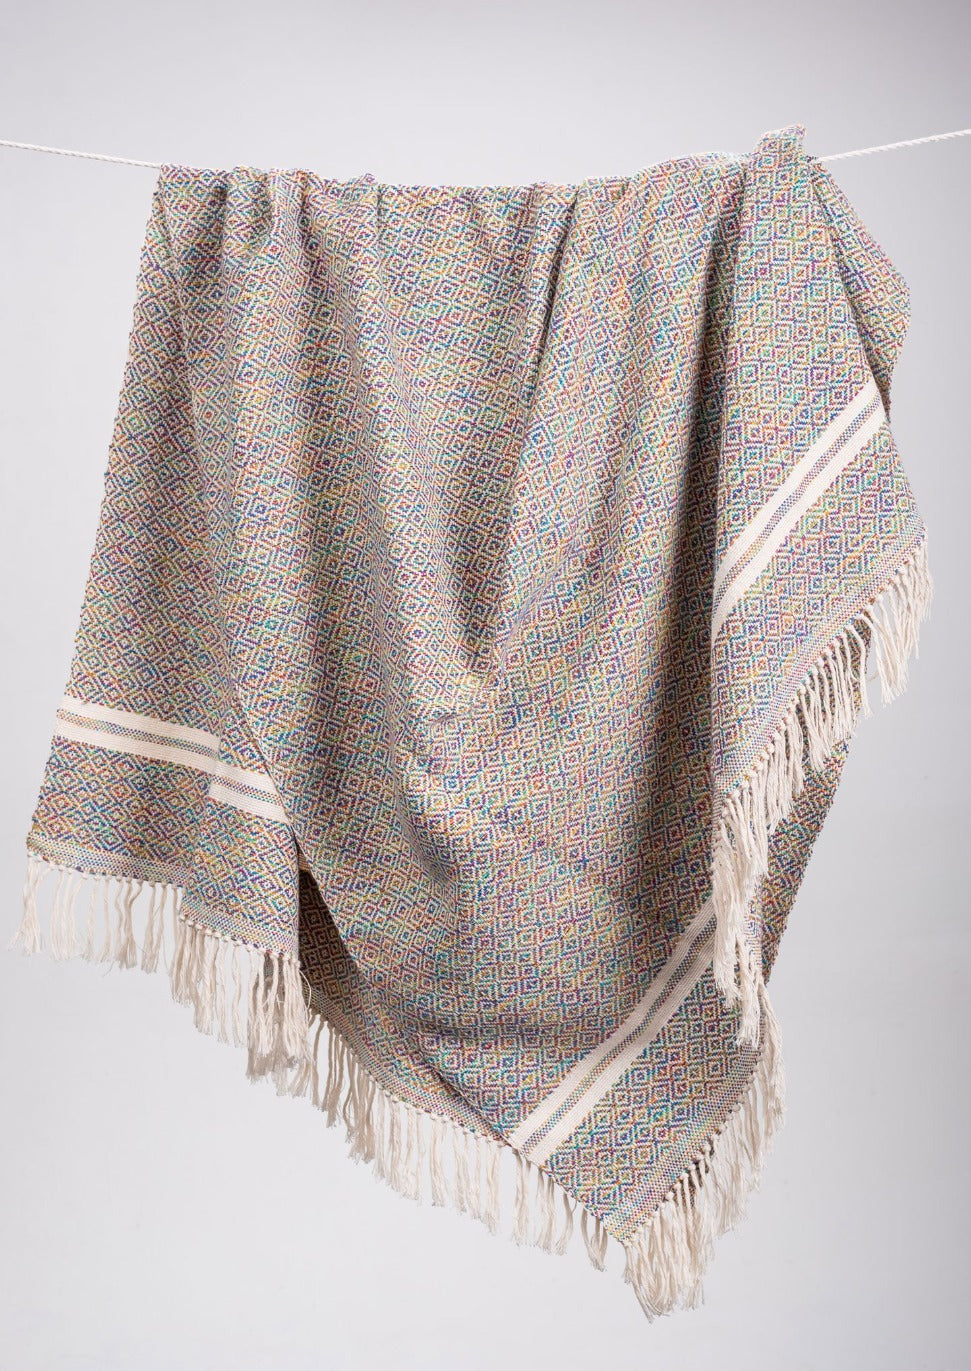 Diamante Striped Cotton Throws & Blankets in Hue Inspired Tones